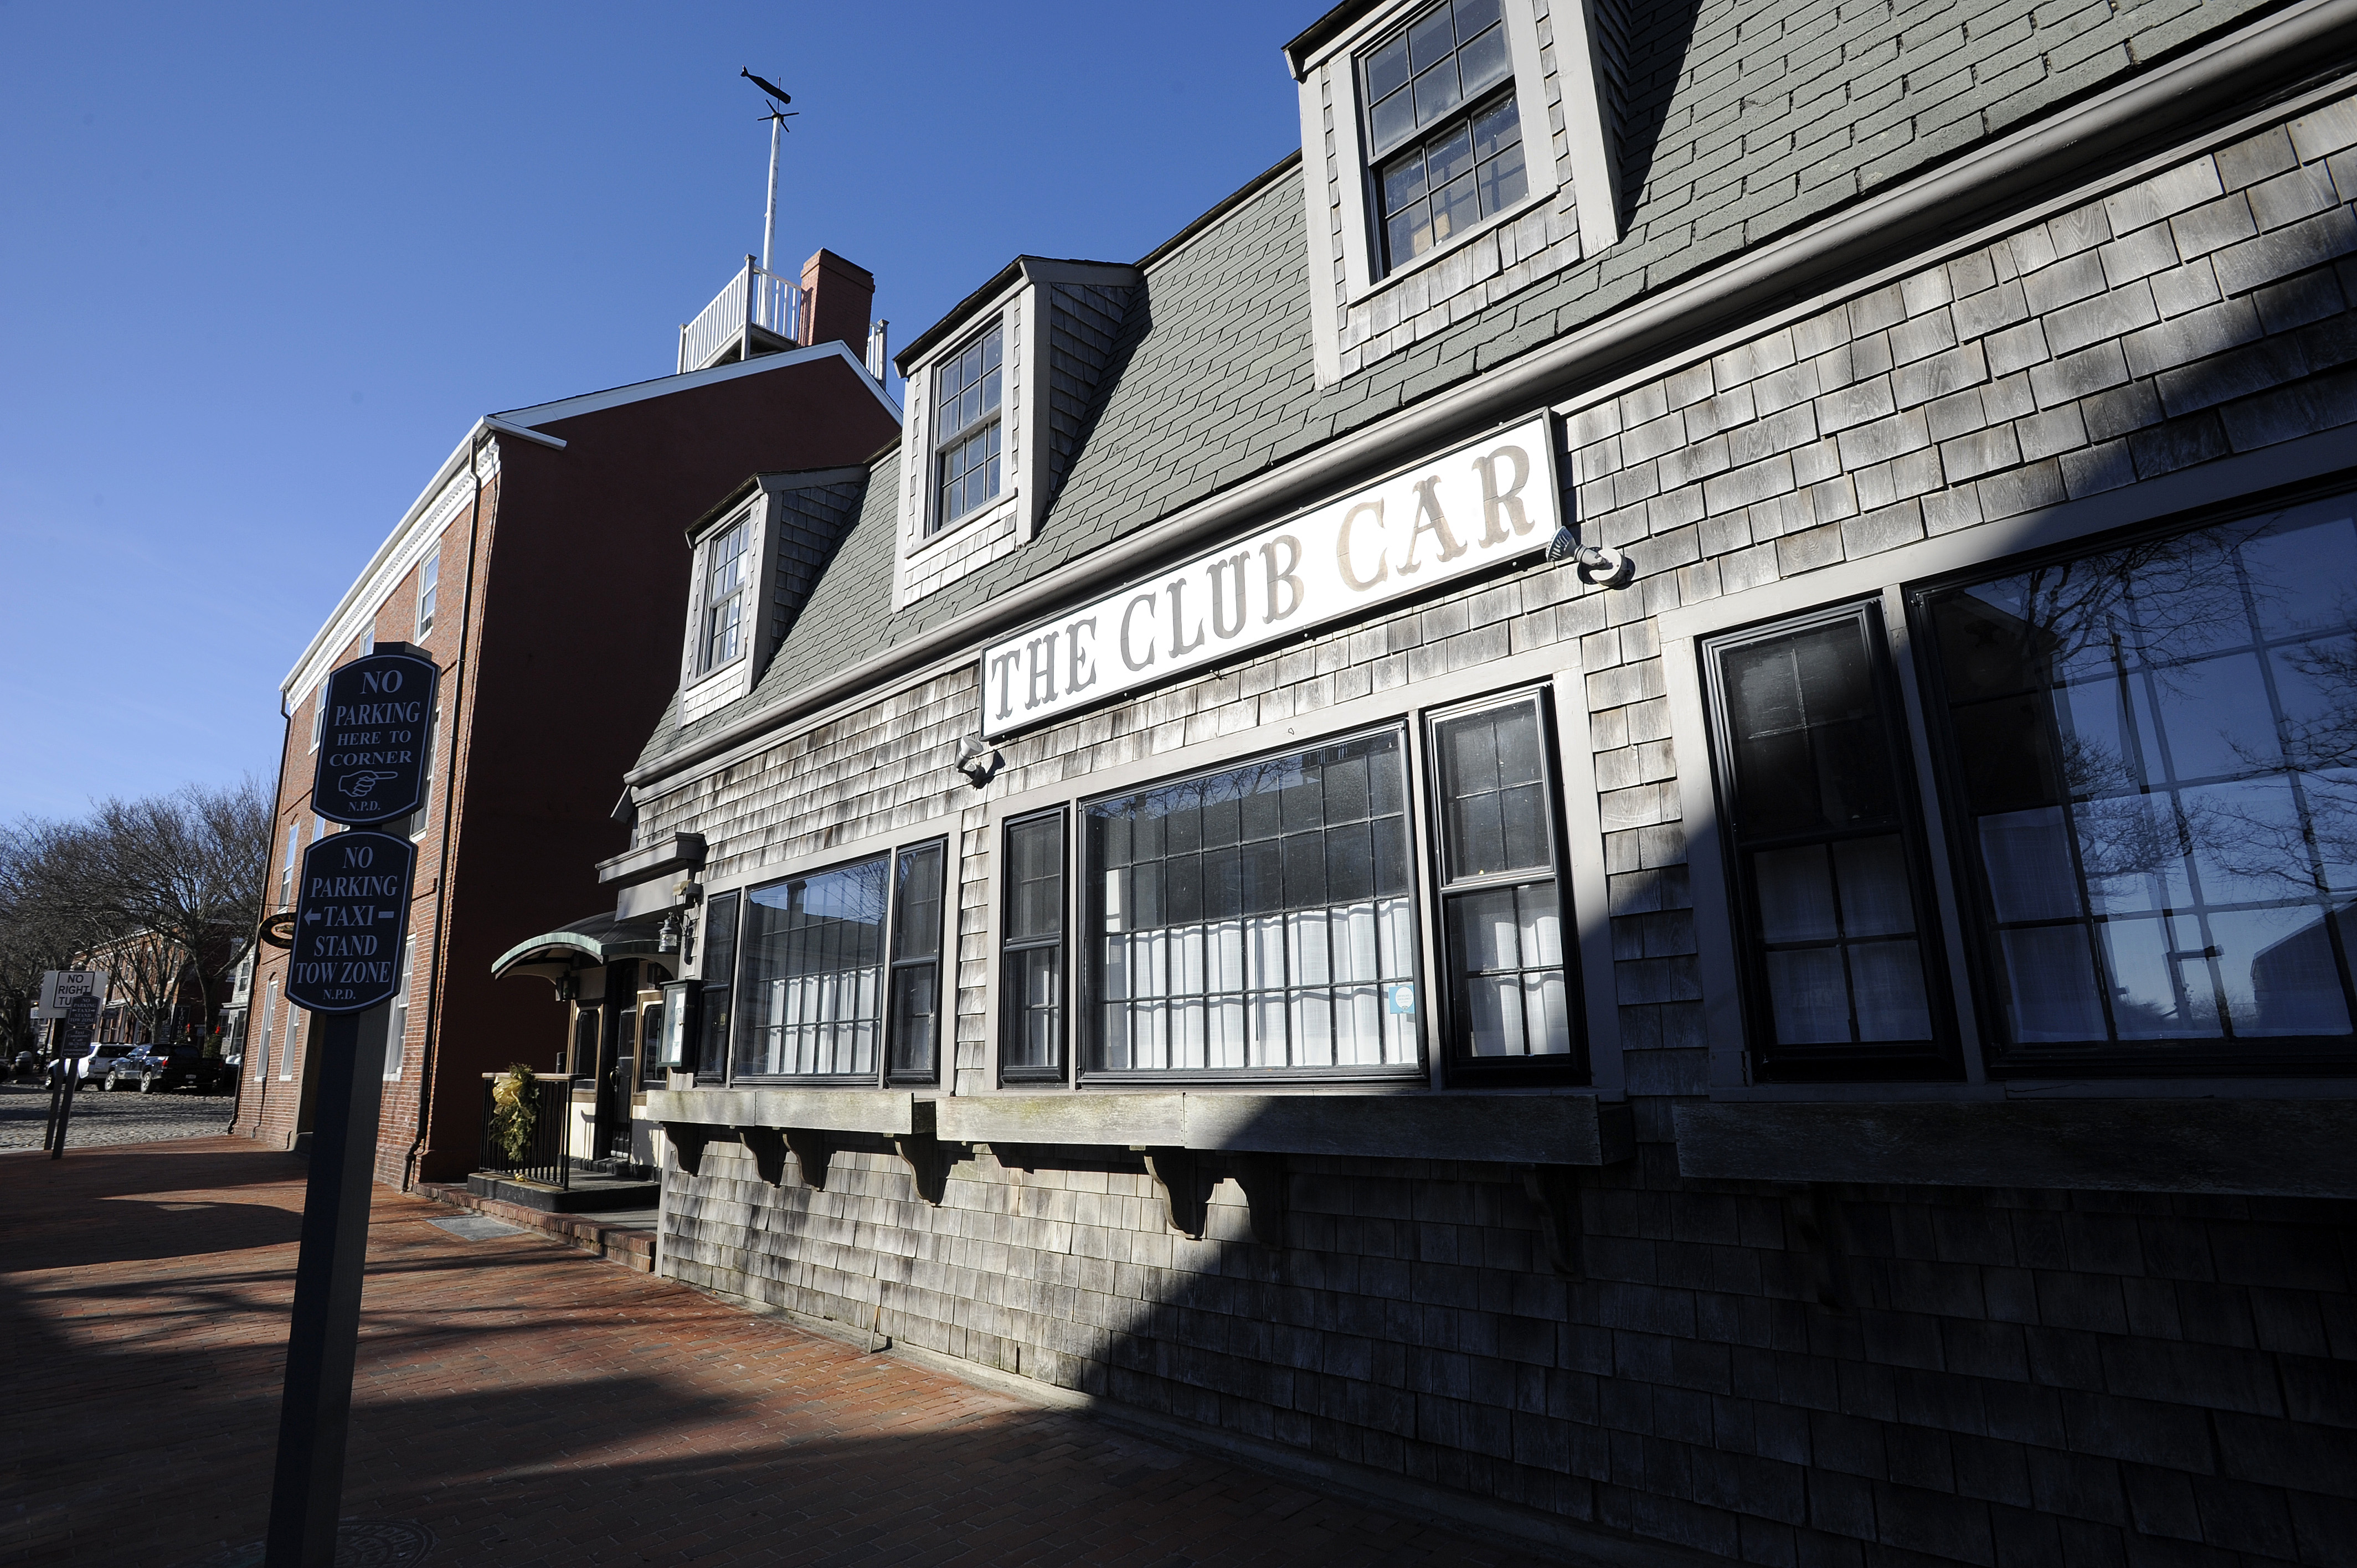 "The Club Car Restaurant where actor Kevin Spacey's alleged indecent sexual assault on a teenager took place is seen on January 7, 2019 in Nantucket, Massachusetts. - Kevin Spacey was formally charged Monday with the indecent assault of a teenager who alleged the US actor groped him at a bar in Massachusetts in 2016. The ""House of Cards"" star was not asked for his plea during the brief arraignment in a crowded Nantucket courtroom, but local media said his lawyer entered a plea of not guilty on his behalf.A follow-on hearing was scheduled for March 4,2019 but Spacey was not required to attend. (Photo by Joseph PREZIOSO / AFP) (Photo credit should read JOSEPH PREZIOSO/AFP/Getty Images)"